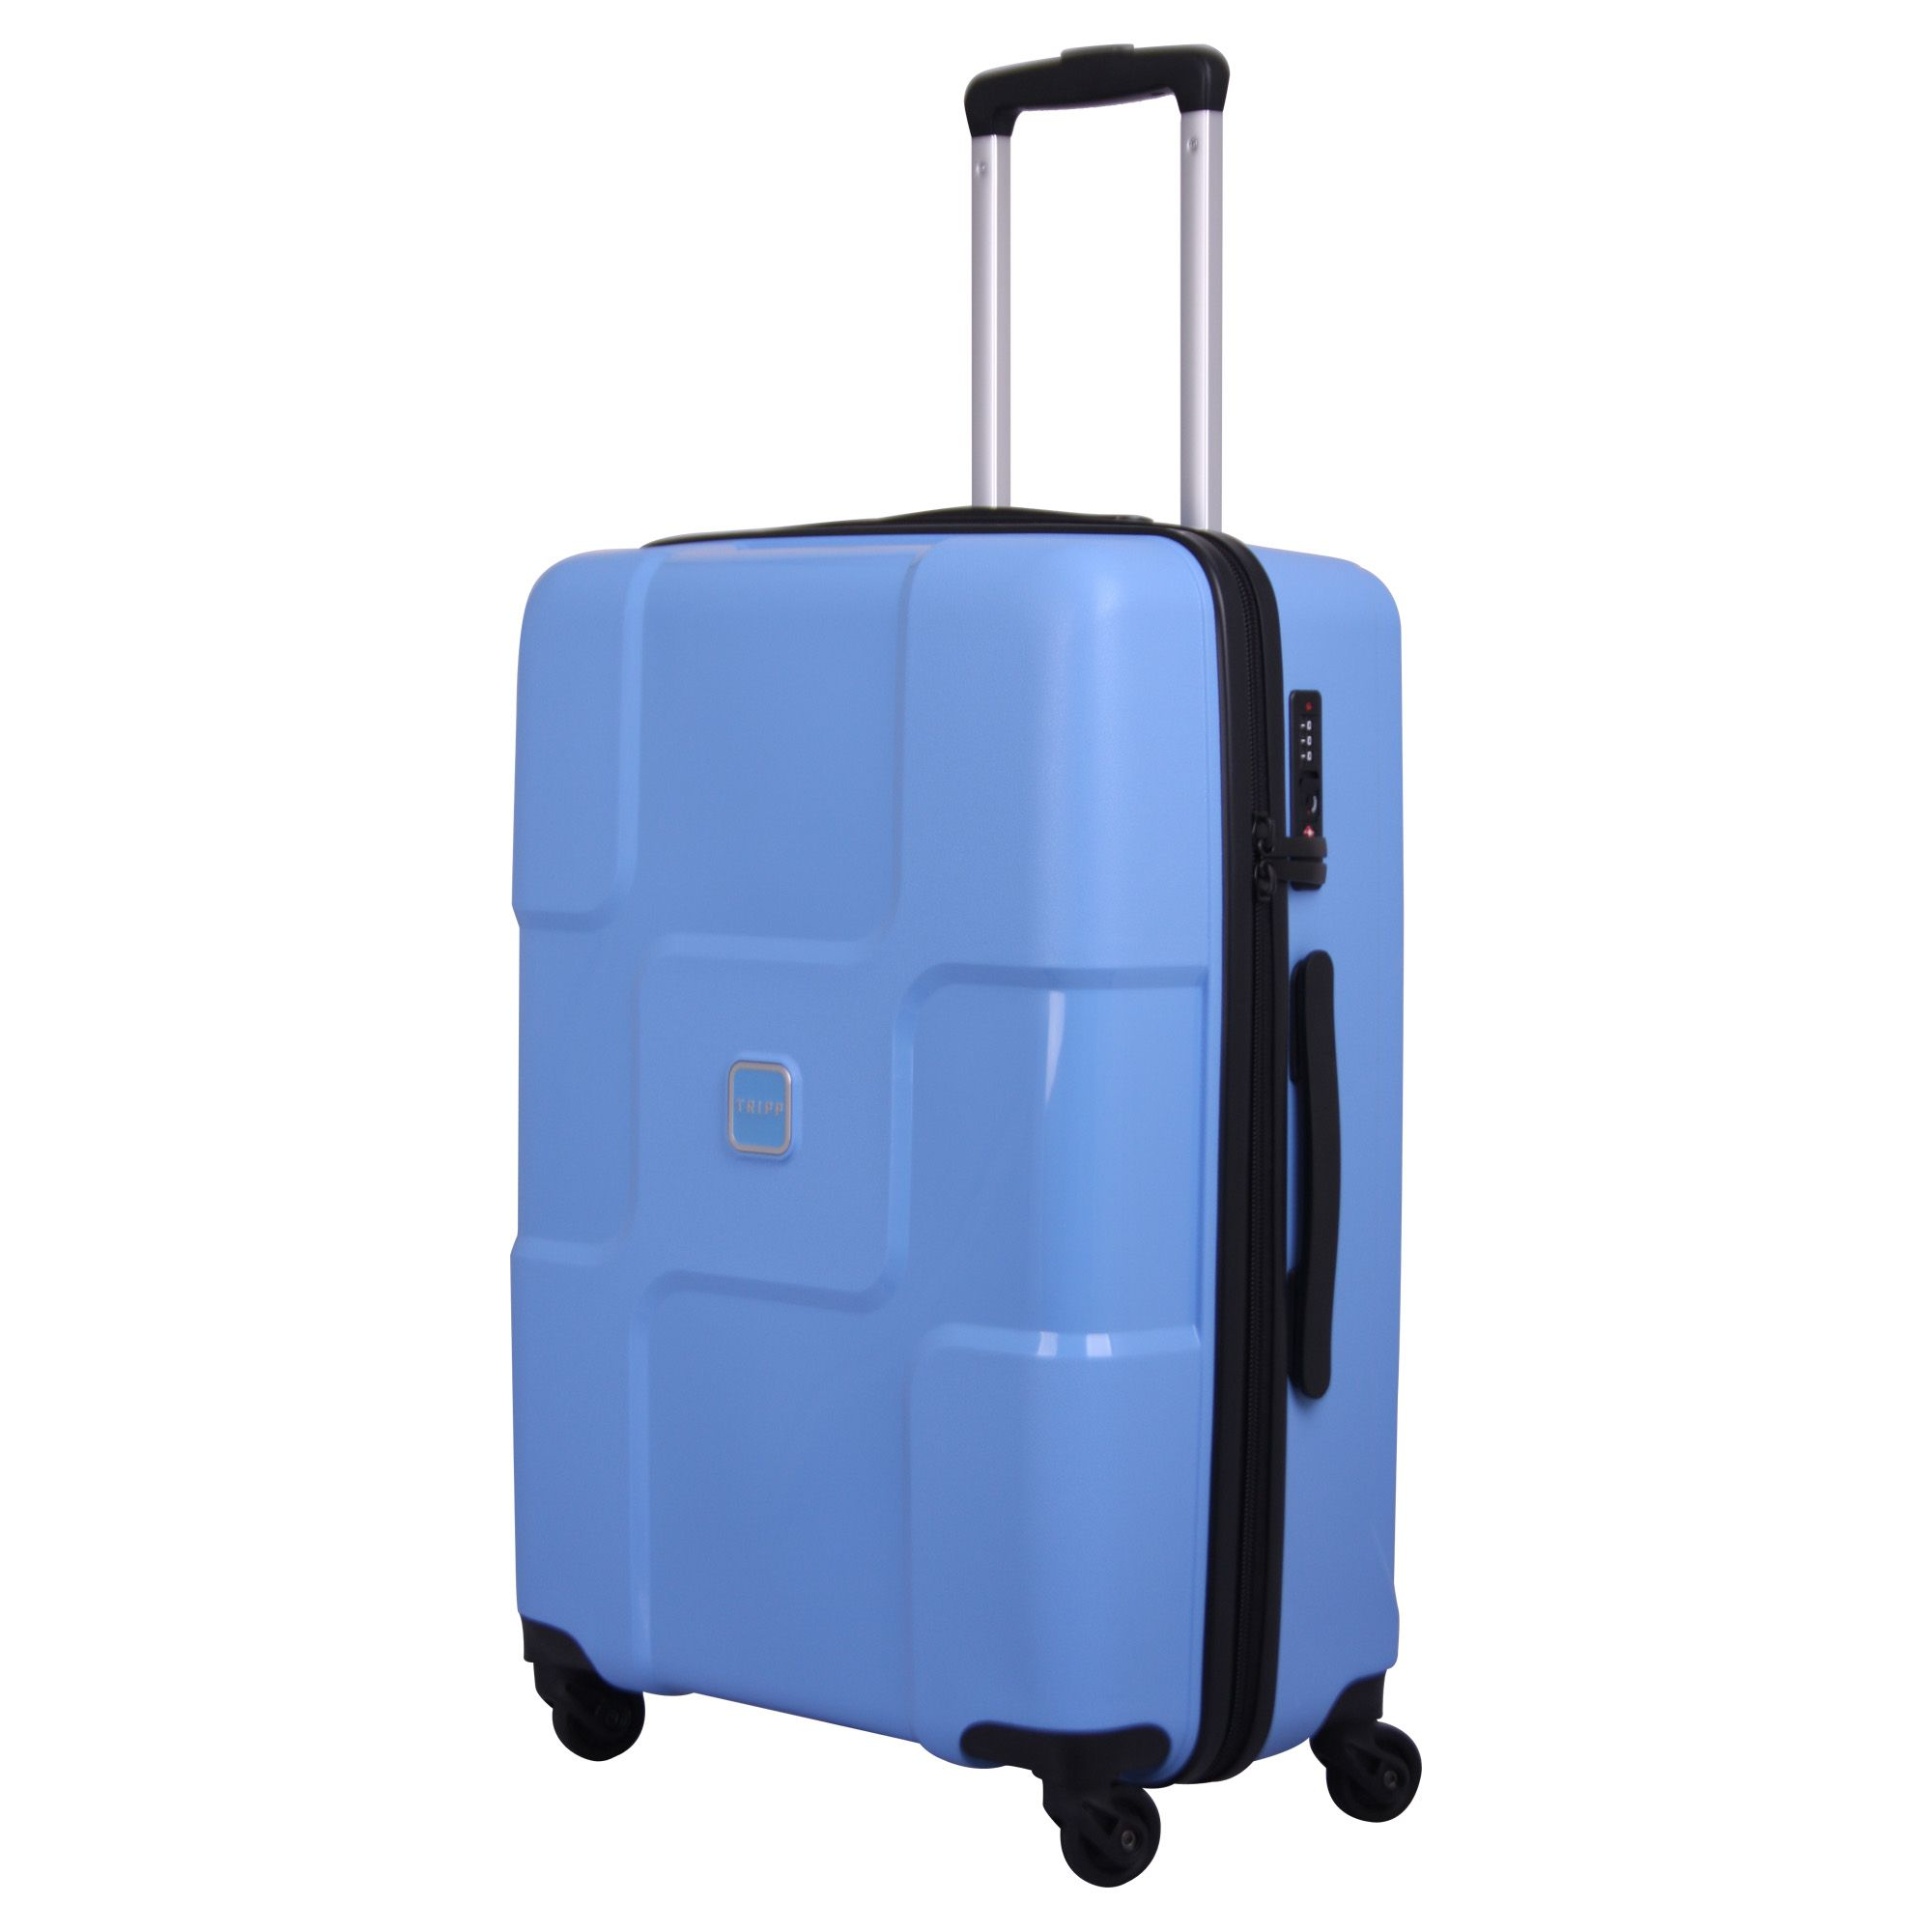 Categories - Hard Suitcases - Suitcases - Tripp Ltd